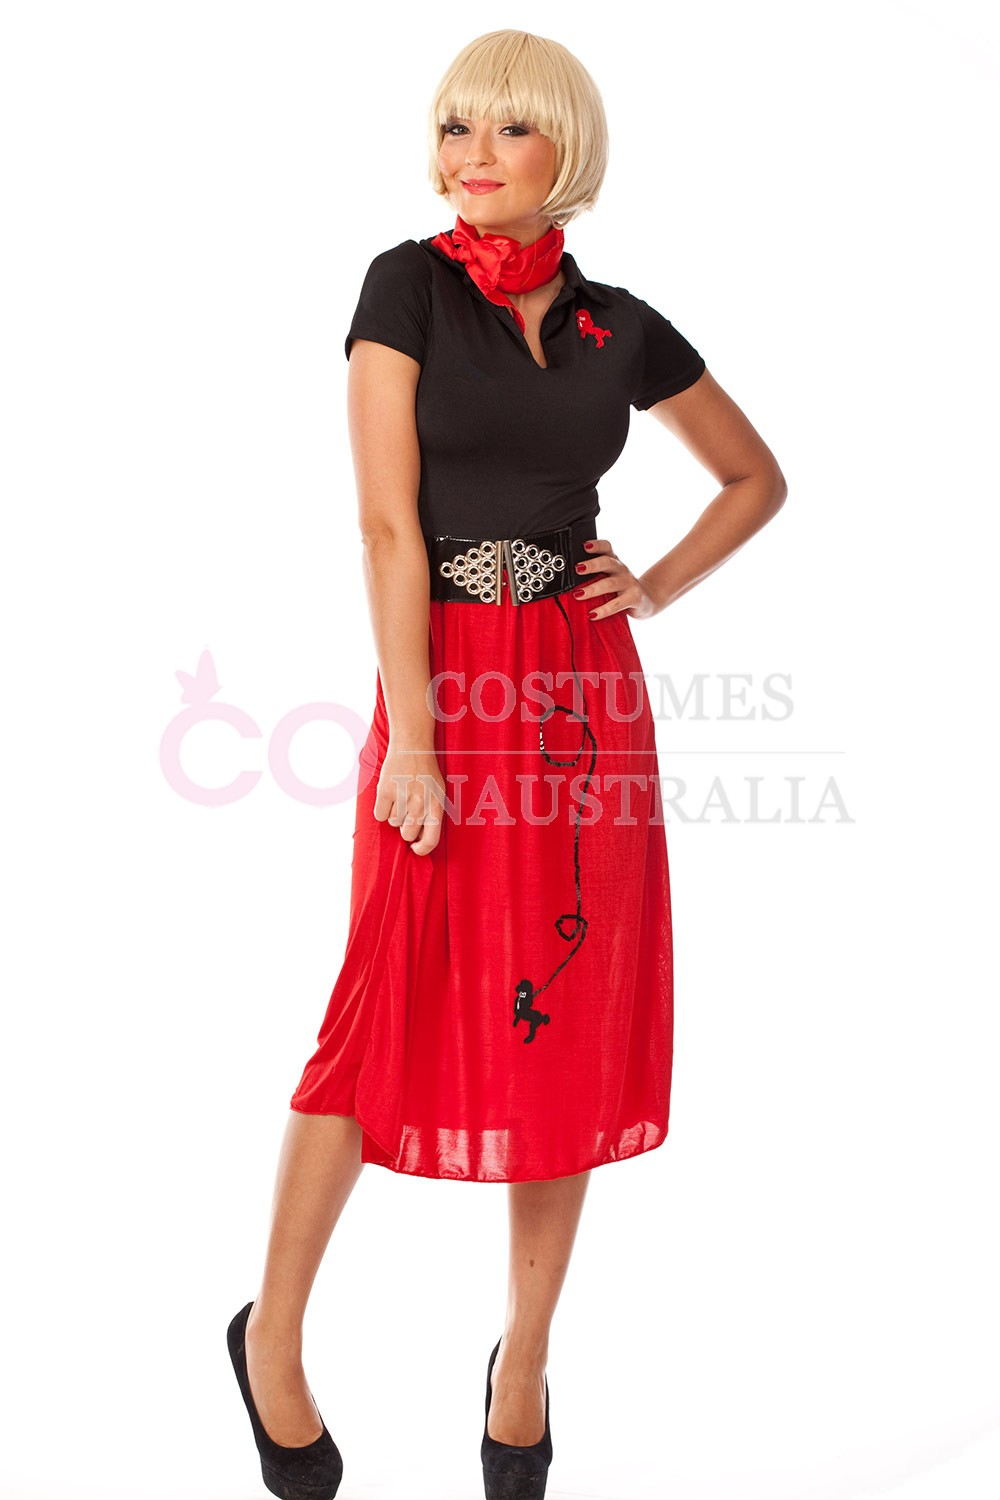 50s Costumes Lz8647 3 1950s Poodle Skirt Costume